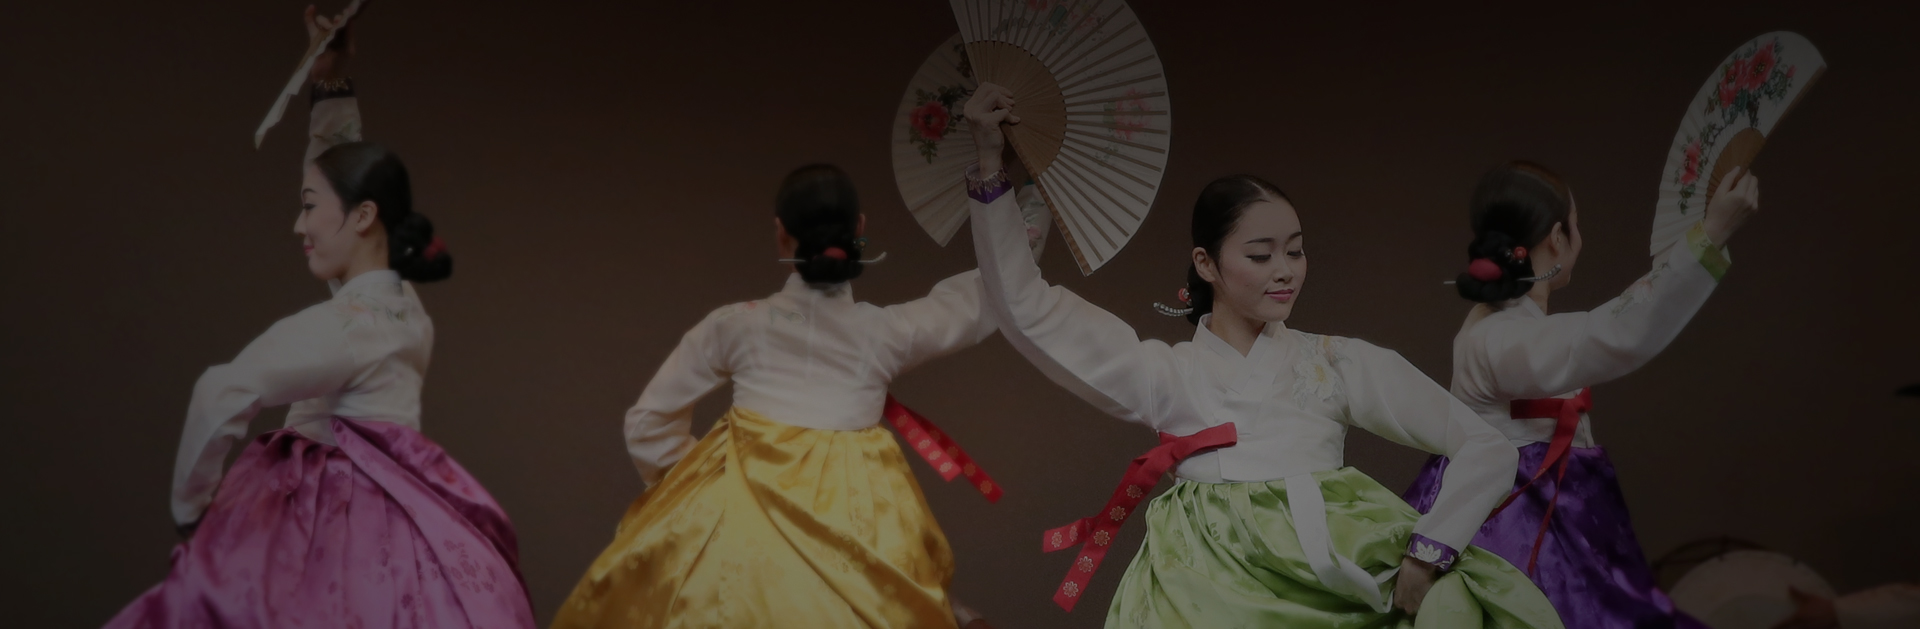 Elegant feast | The Busan National Gugak Center will make every effort to naturally blend traditional art into our lives and to proudly share our culture  through the world stage.